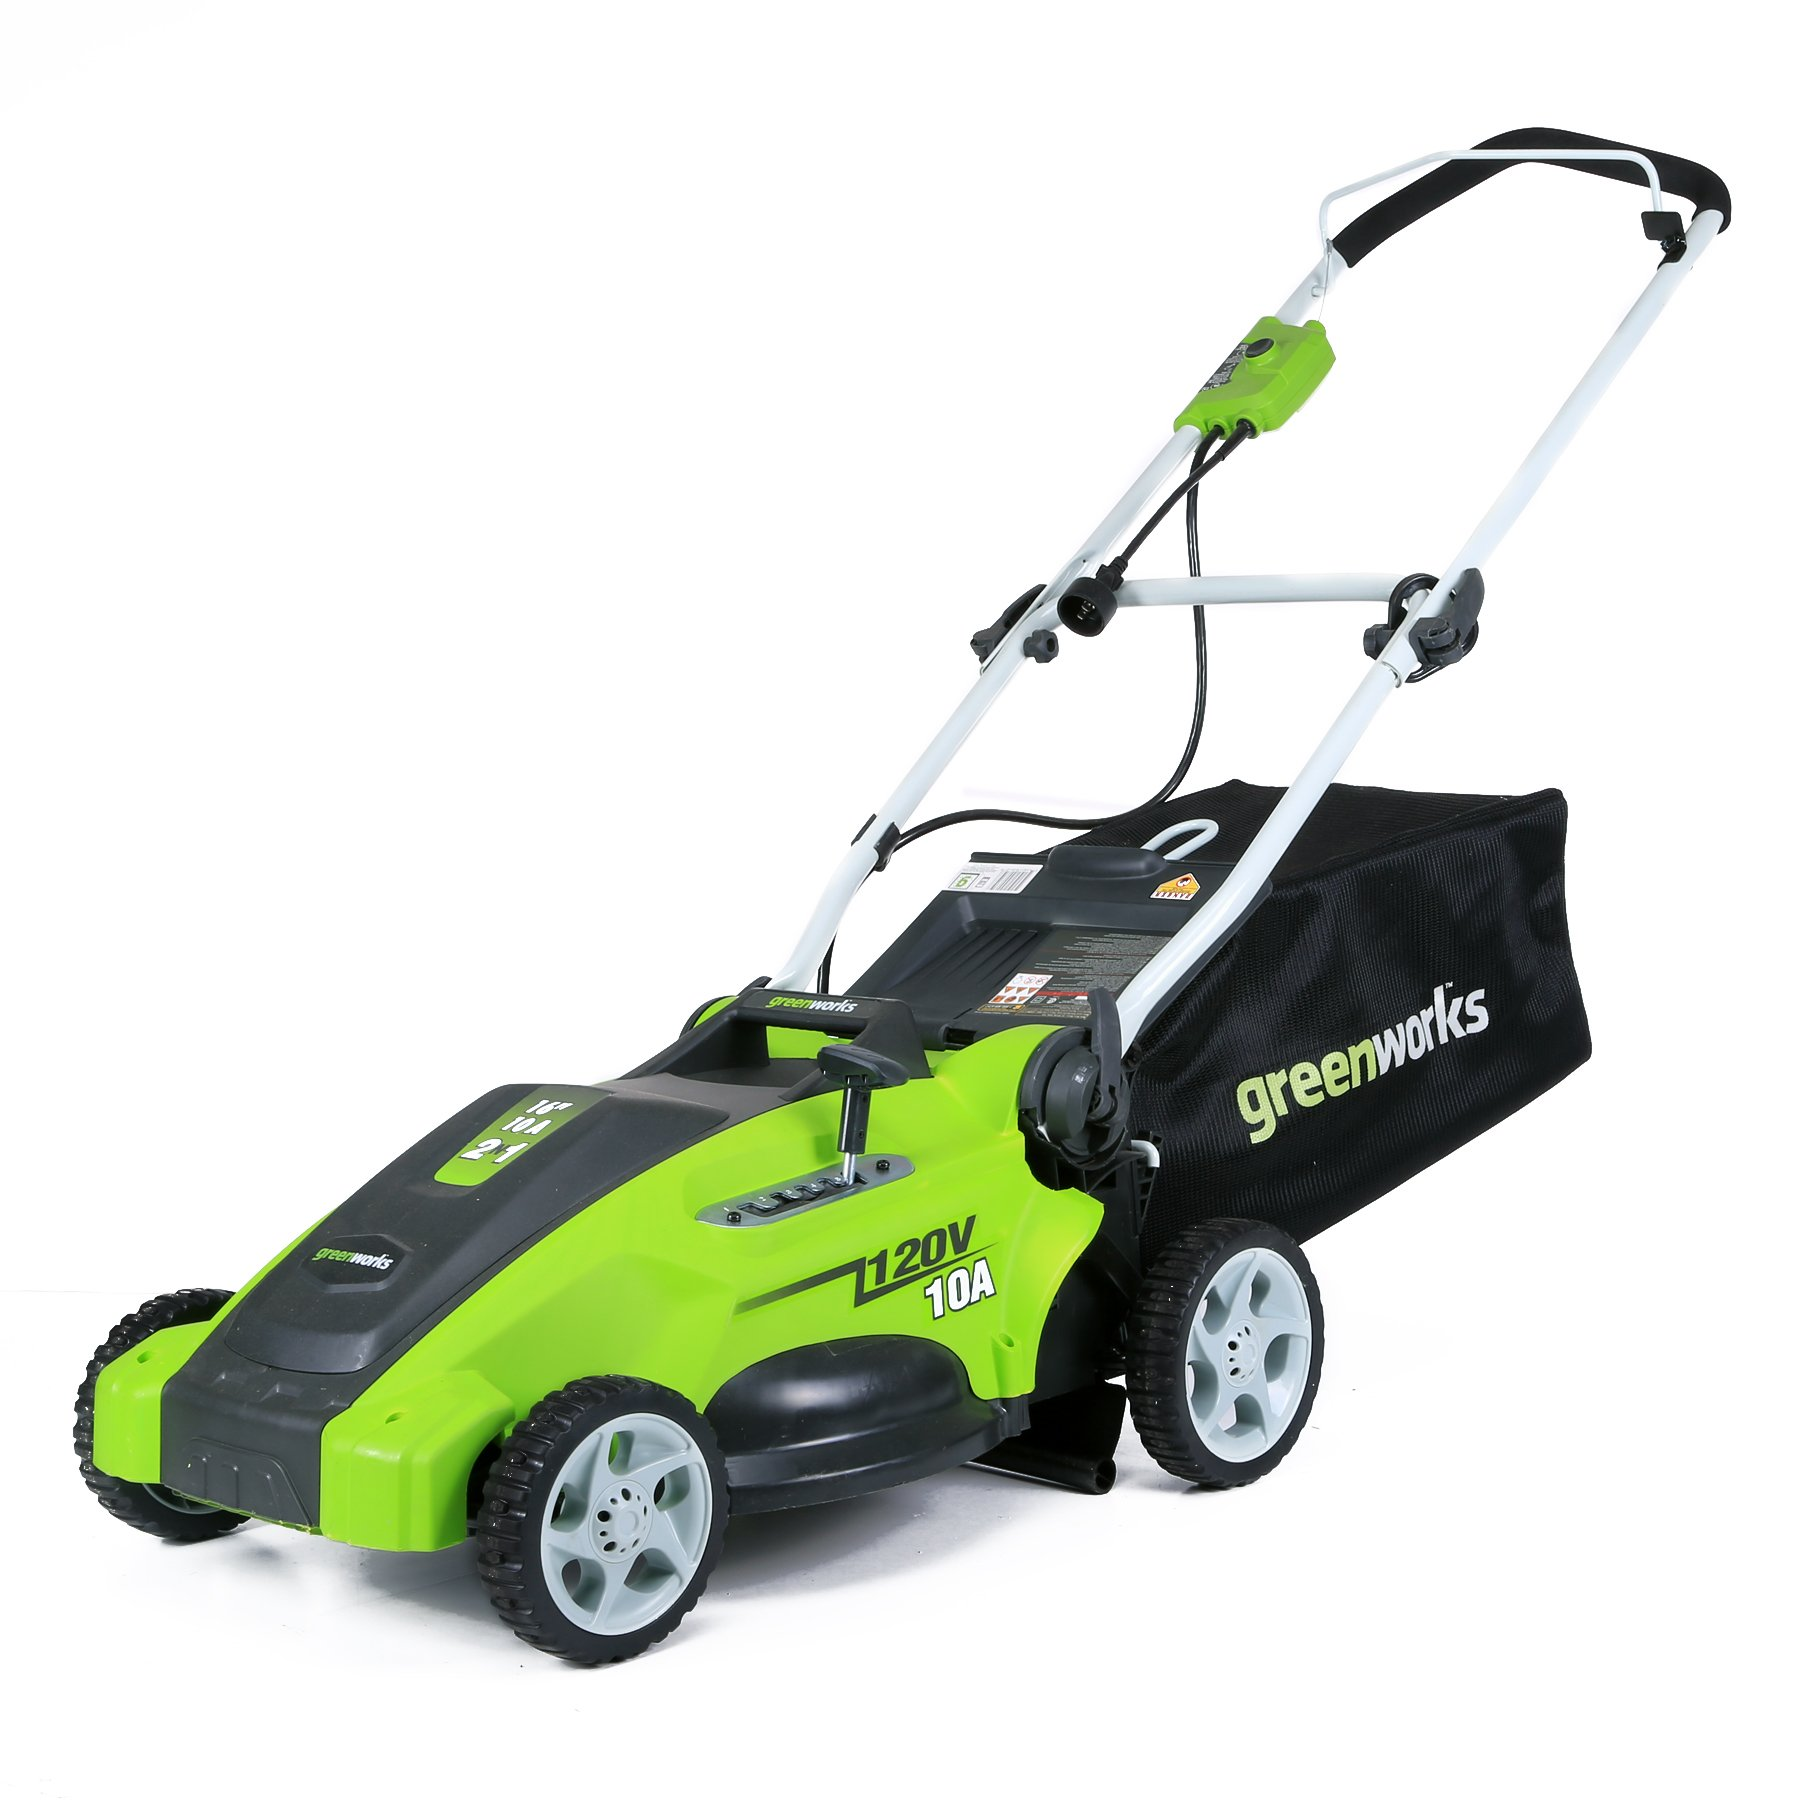 Greenworks 16-Inch 10 Amp Corded Electric Lawn Mower 25142 by Greenworks